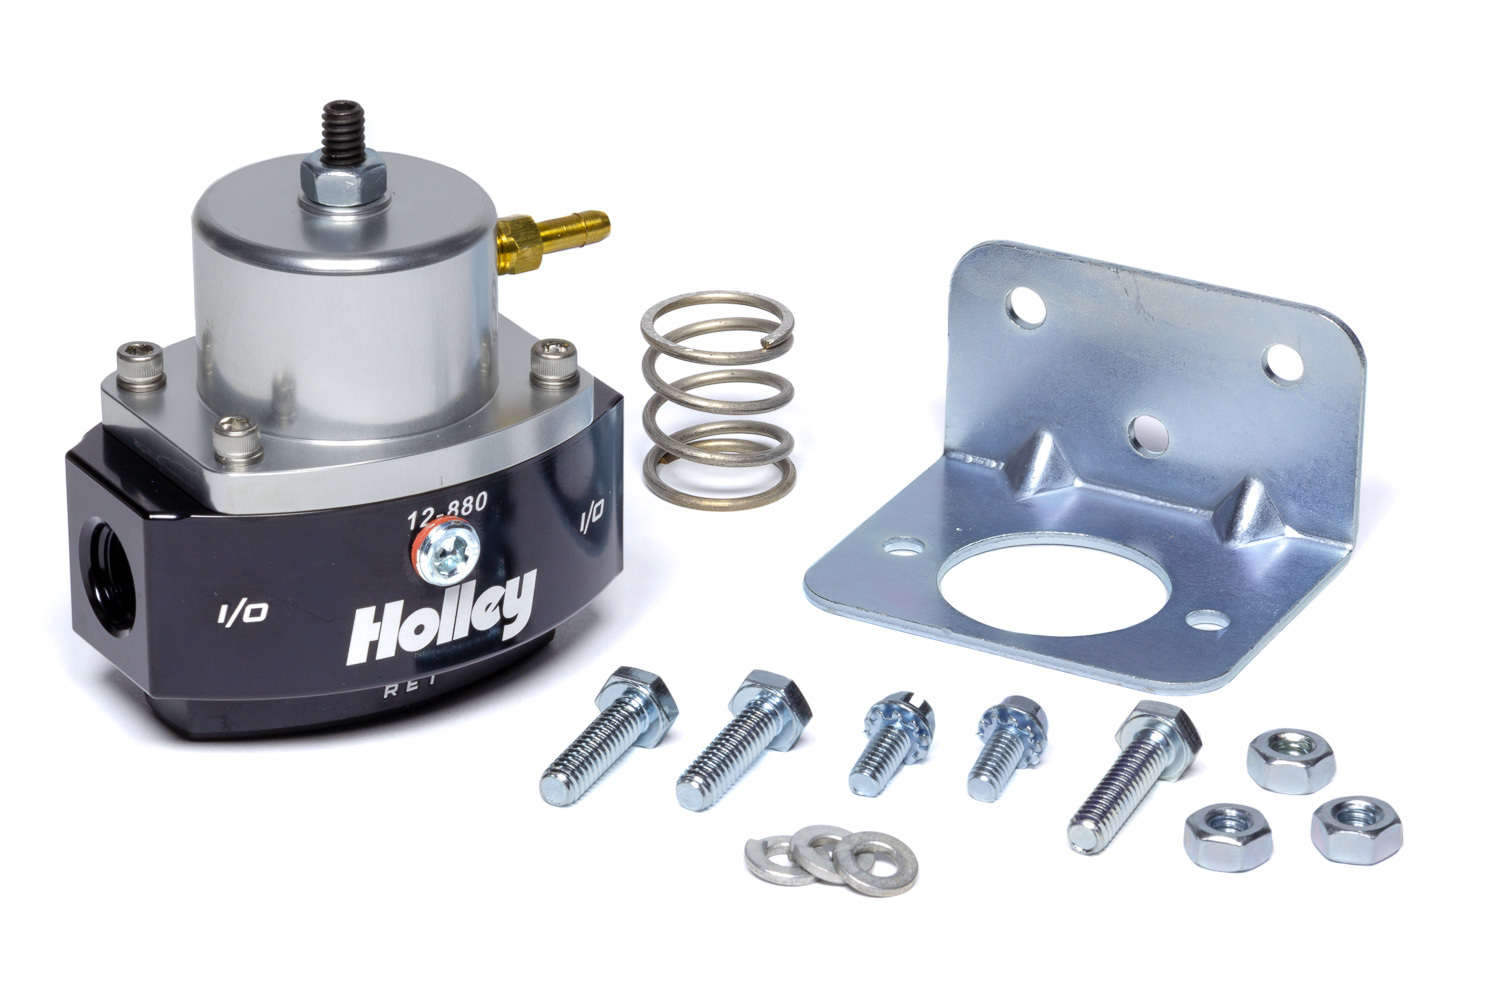 Holley 12-880 Fuel Pressure Regulator, HP Billet, 4 to 65 psi, In-Line, 6 AN Female O-Ring Inlet, 6 AN Female O-Ring Outlet, 6 AN Female O-Ring Return, 1/8 in NPT Port, Bypass, Aluminum, Black / Clear Anodized, Diesel / E85 / Gas, Each